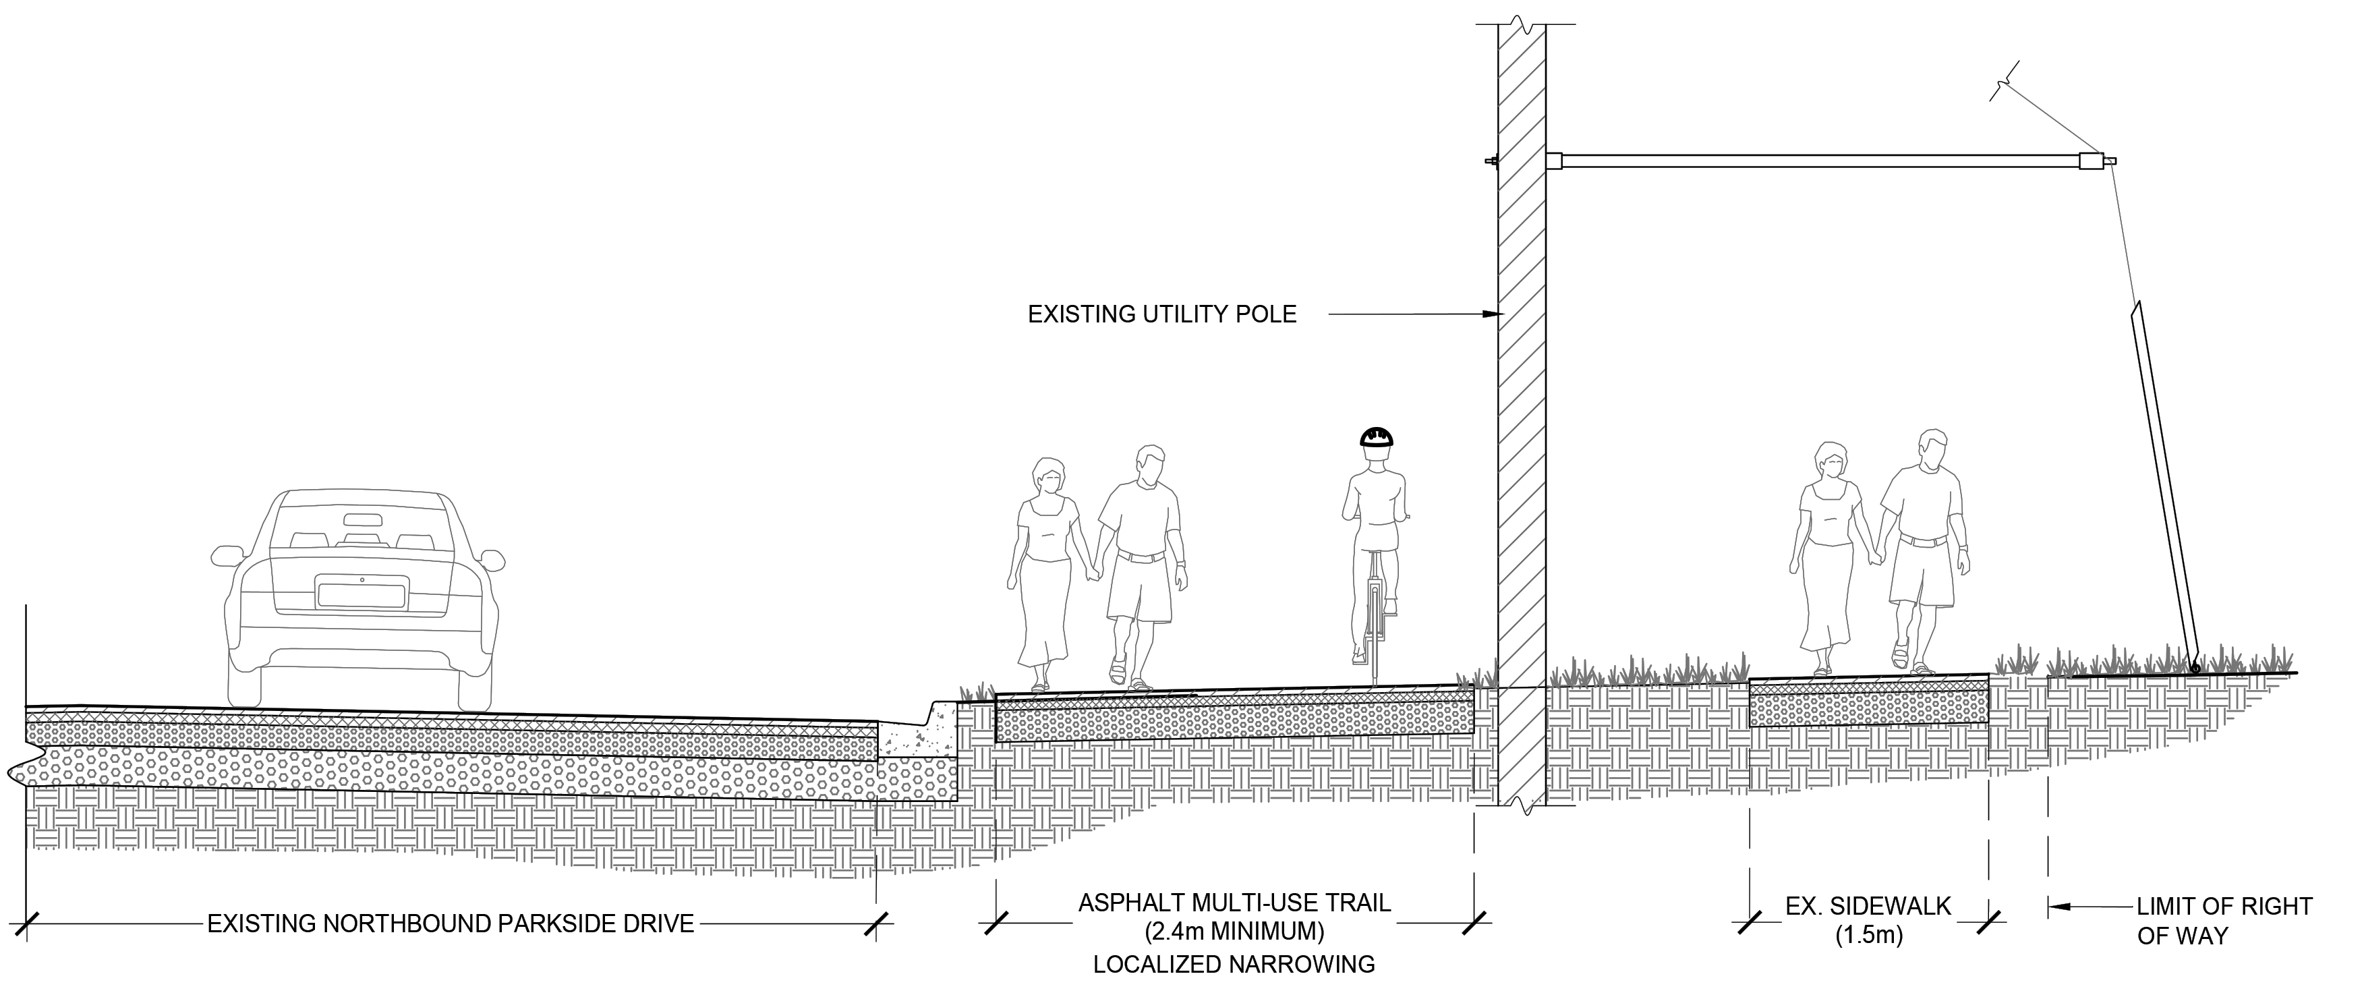 Sample cross section of Parkside Drive, showing vehicle lane, multi-use trail and separated sidewalk.